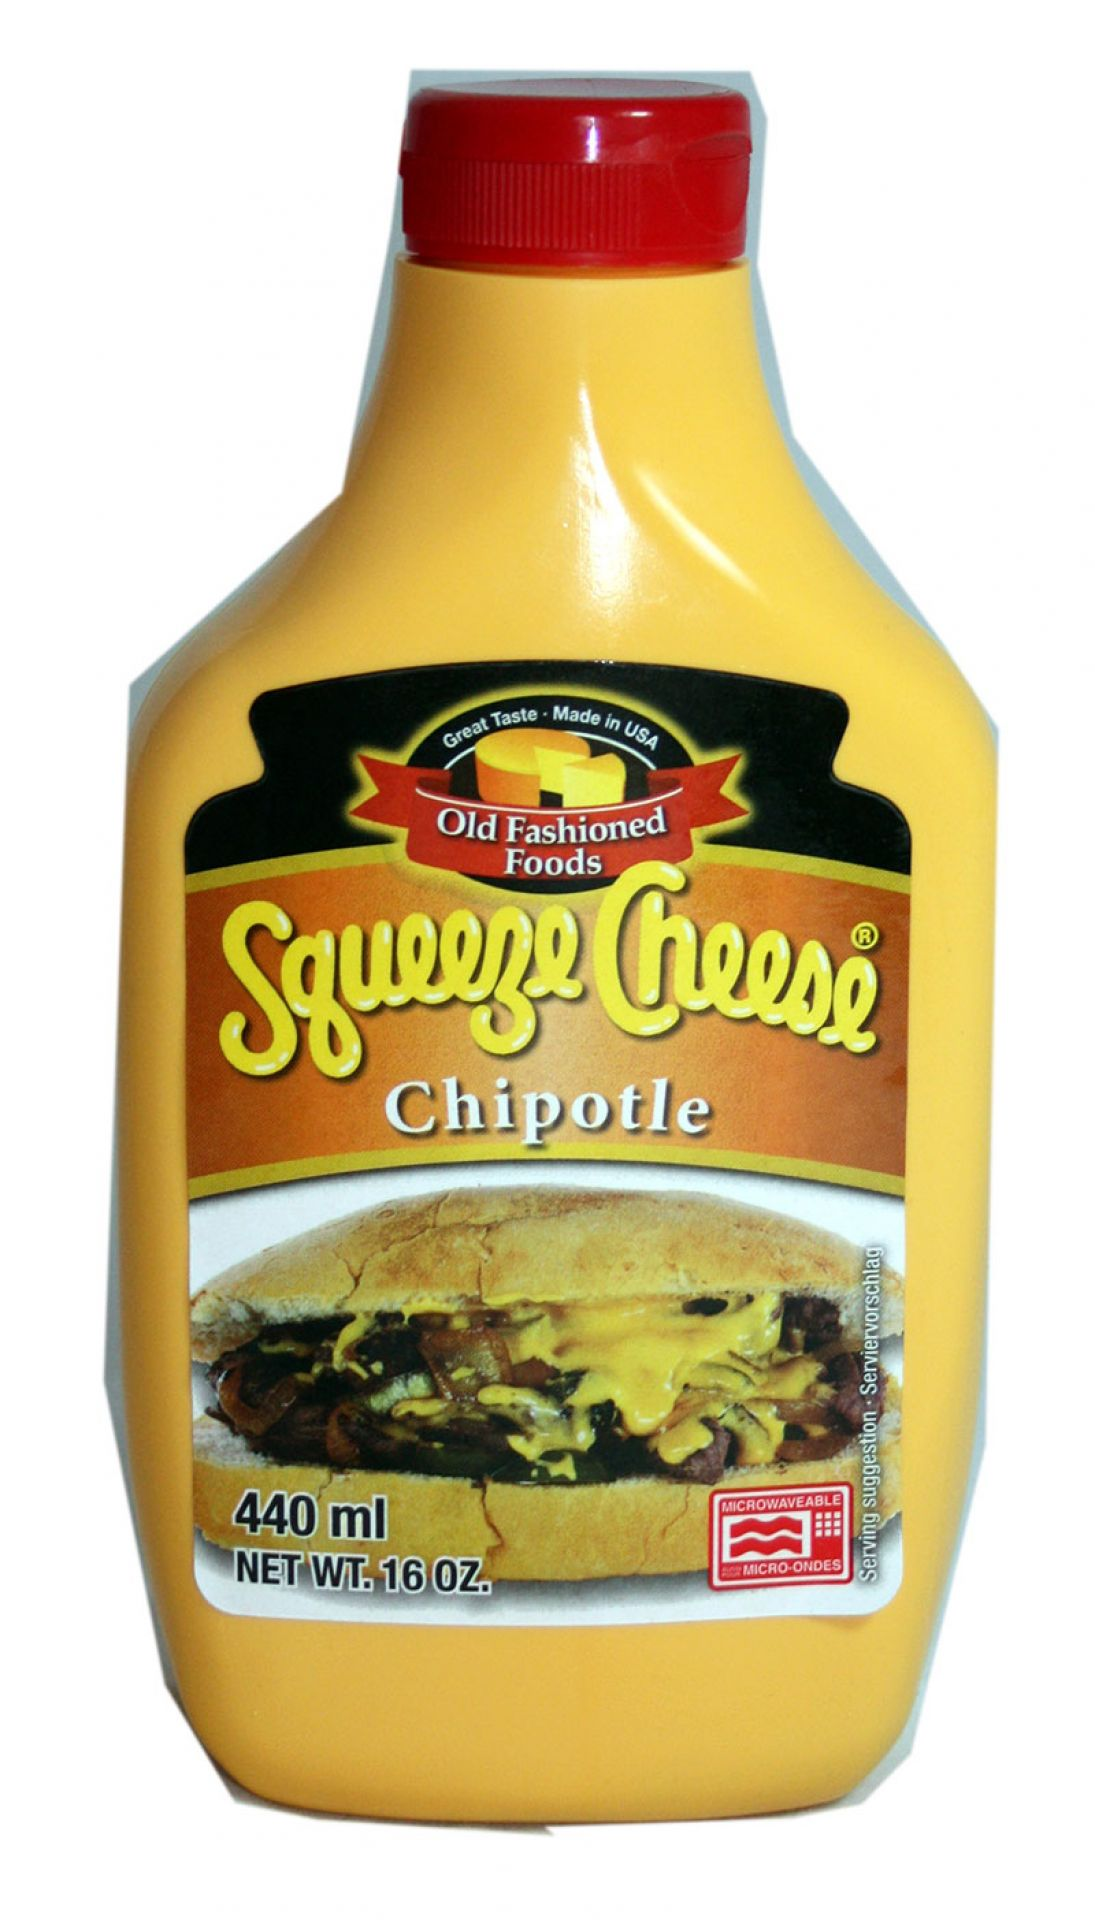 Squeeze Cheese Chipotle